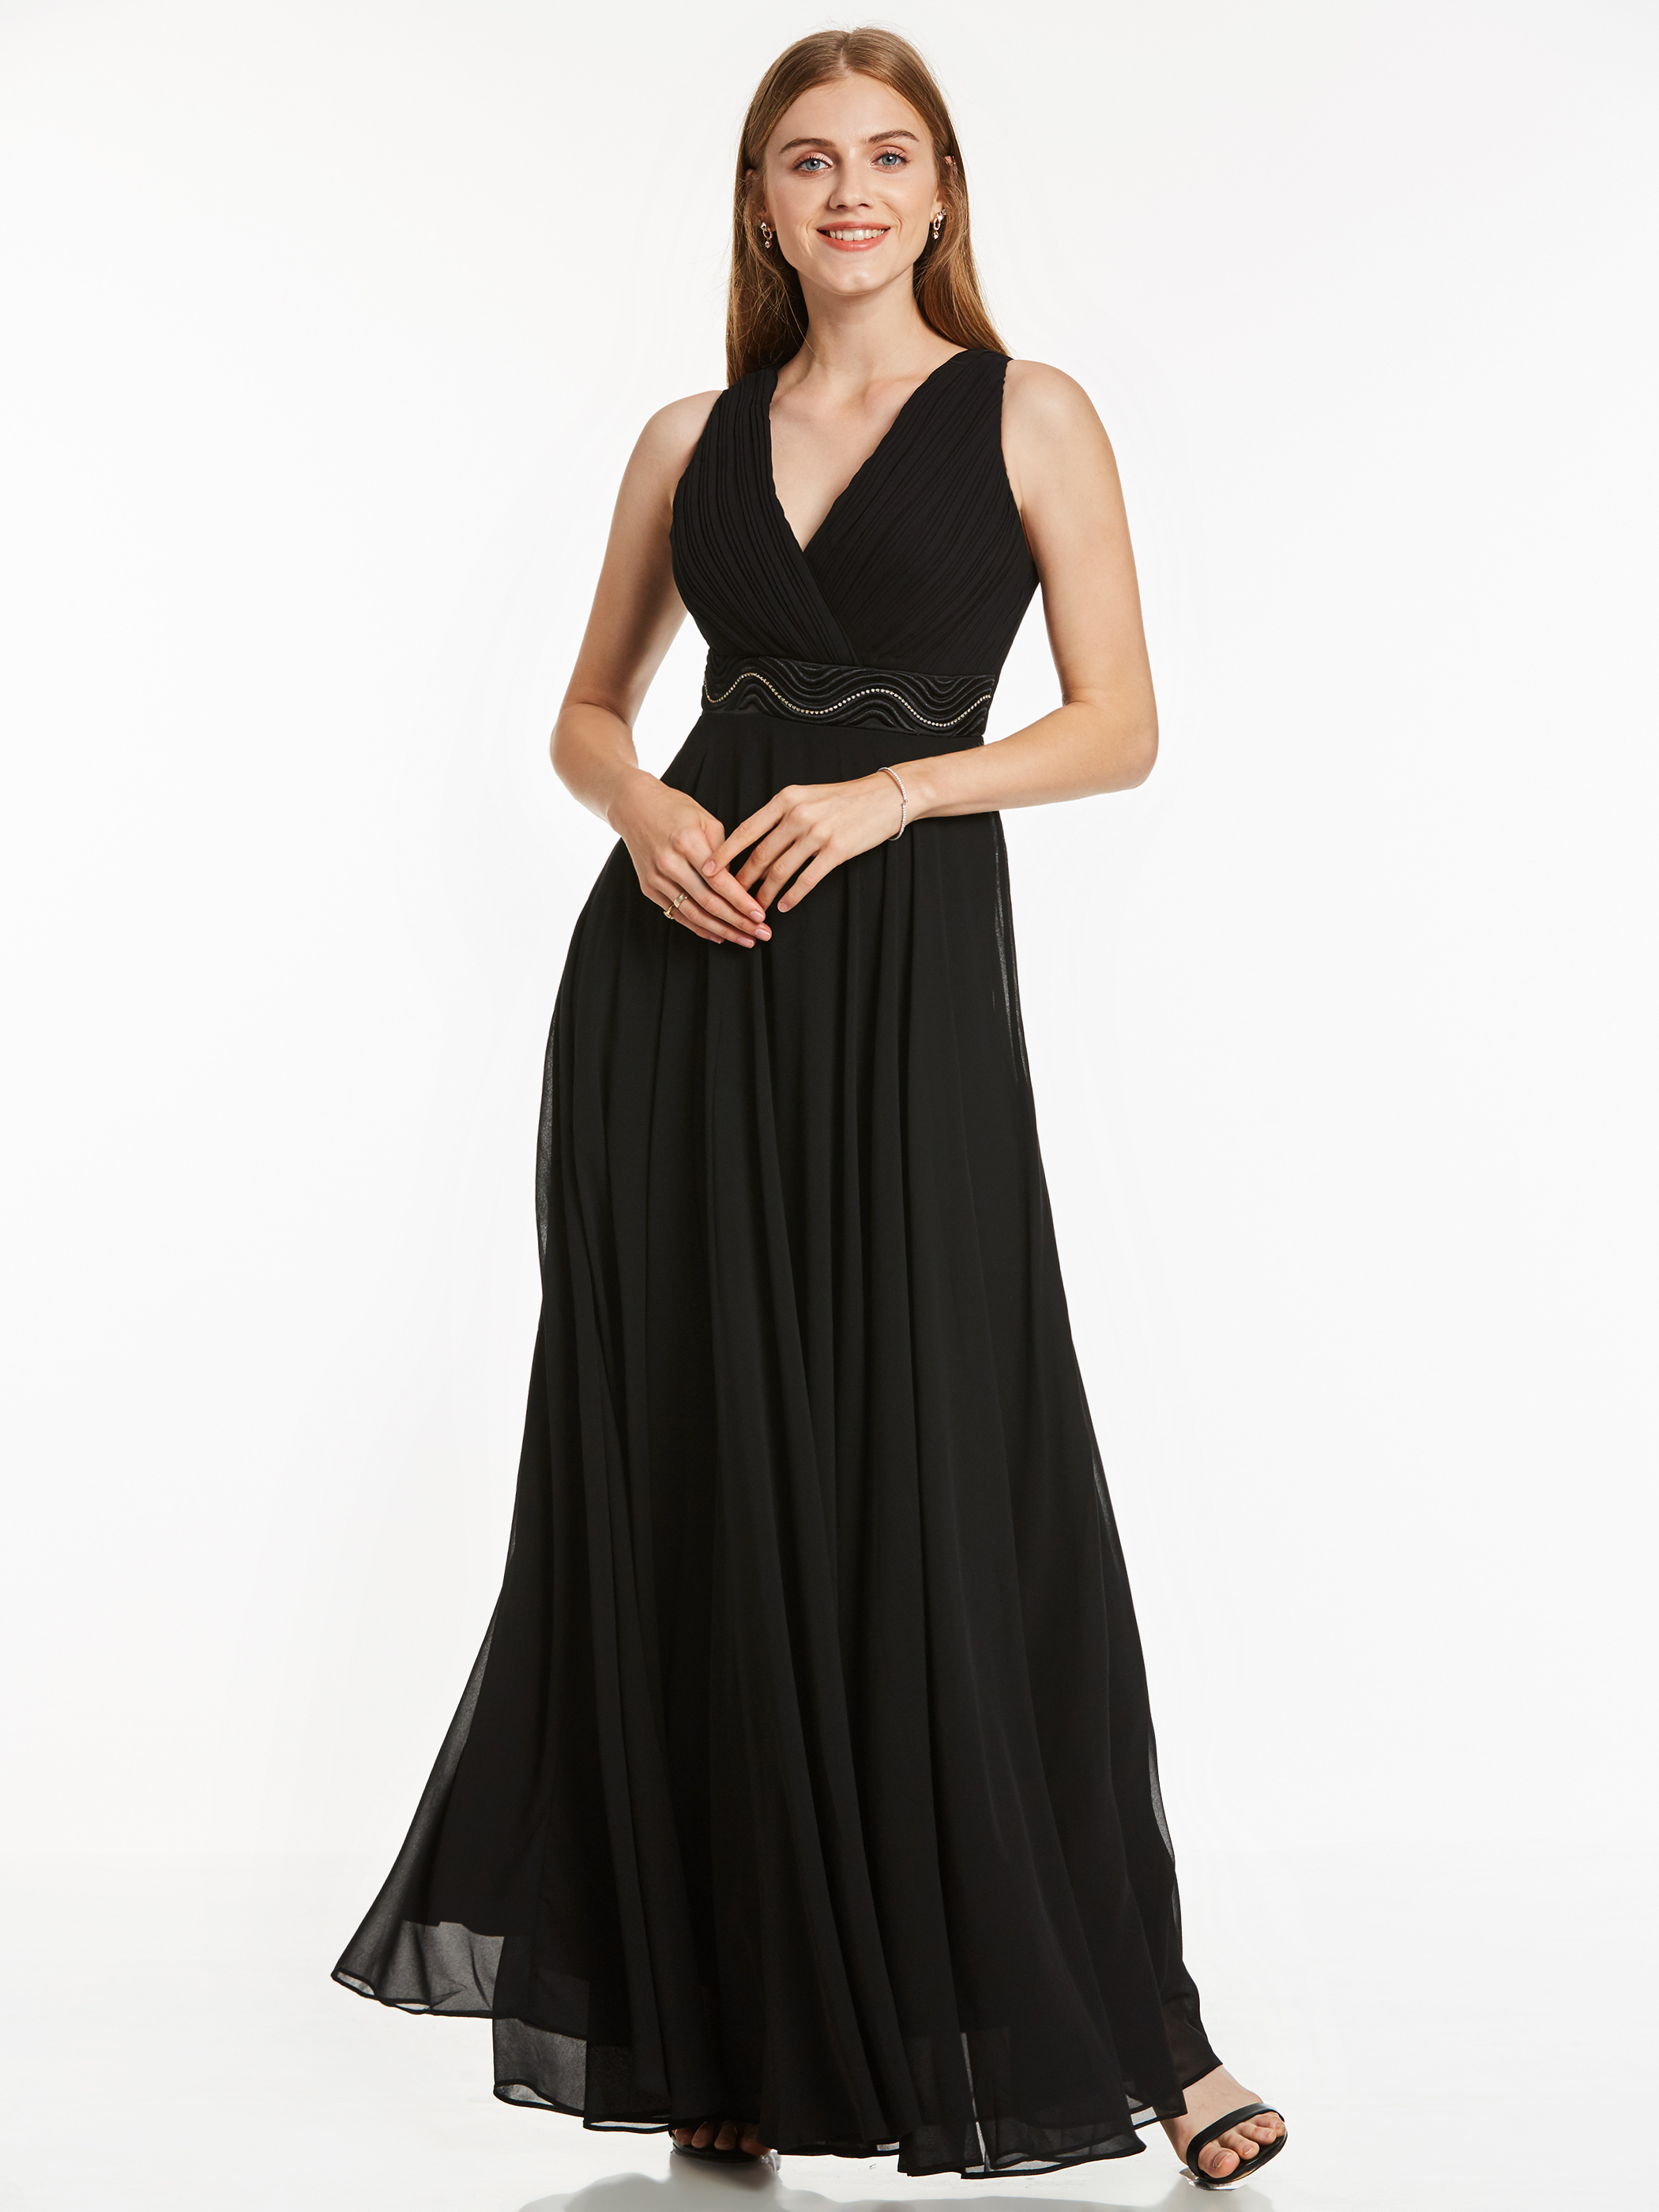 Dressv Black Long Evening Dress Cheap Short Sleeves V Neck A Line Beading Ruched Wedding Party Formal Dress Evening Dresses